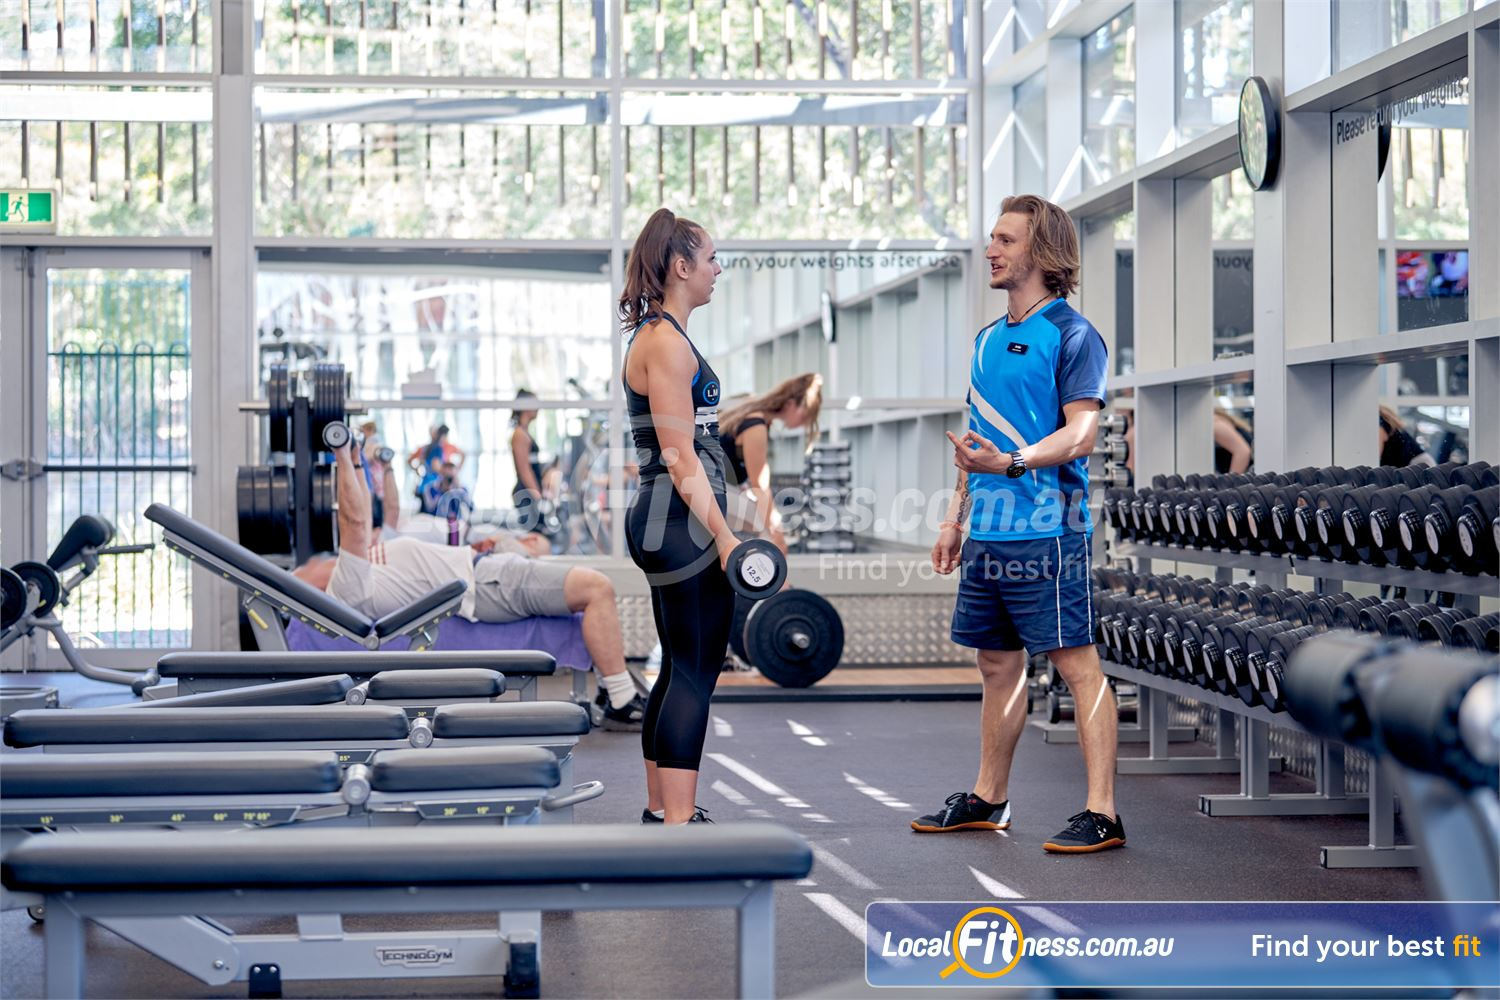 Eltham Leisure Centre Eltham Our Eltham gym includes a fully equipped free-weights area.